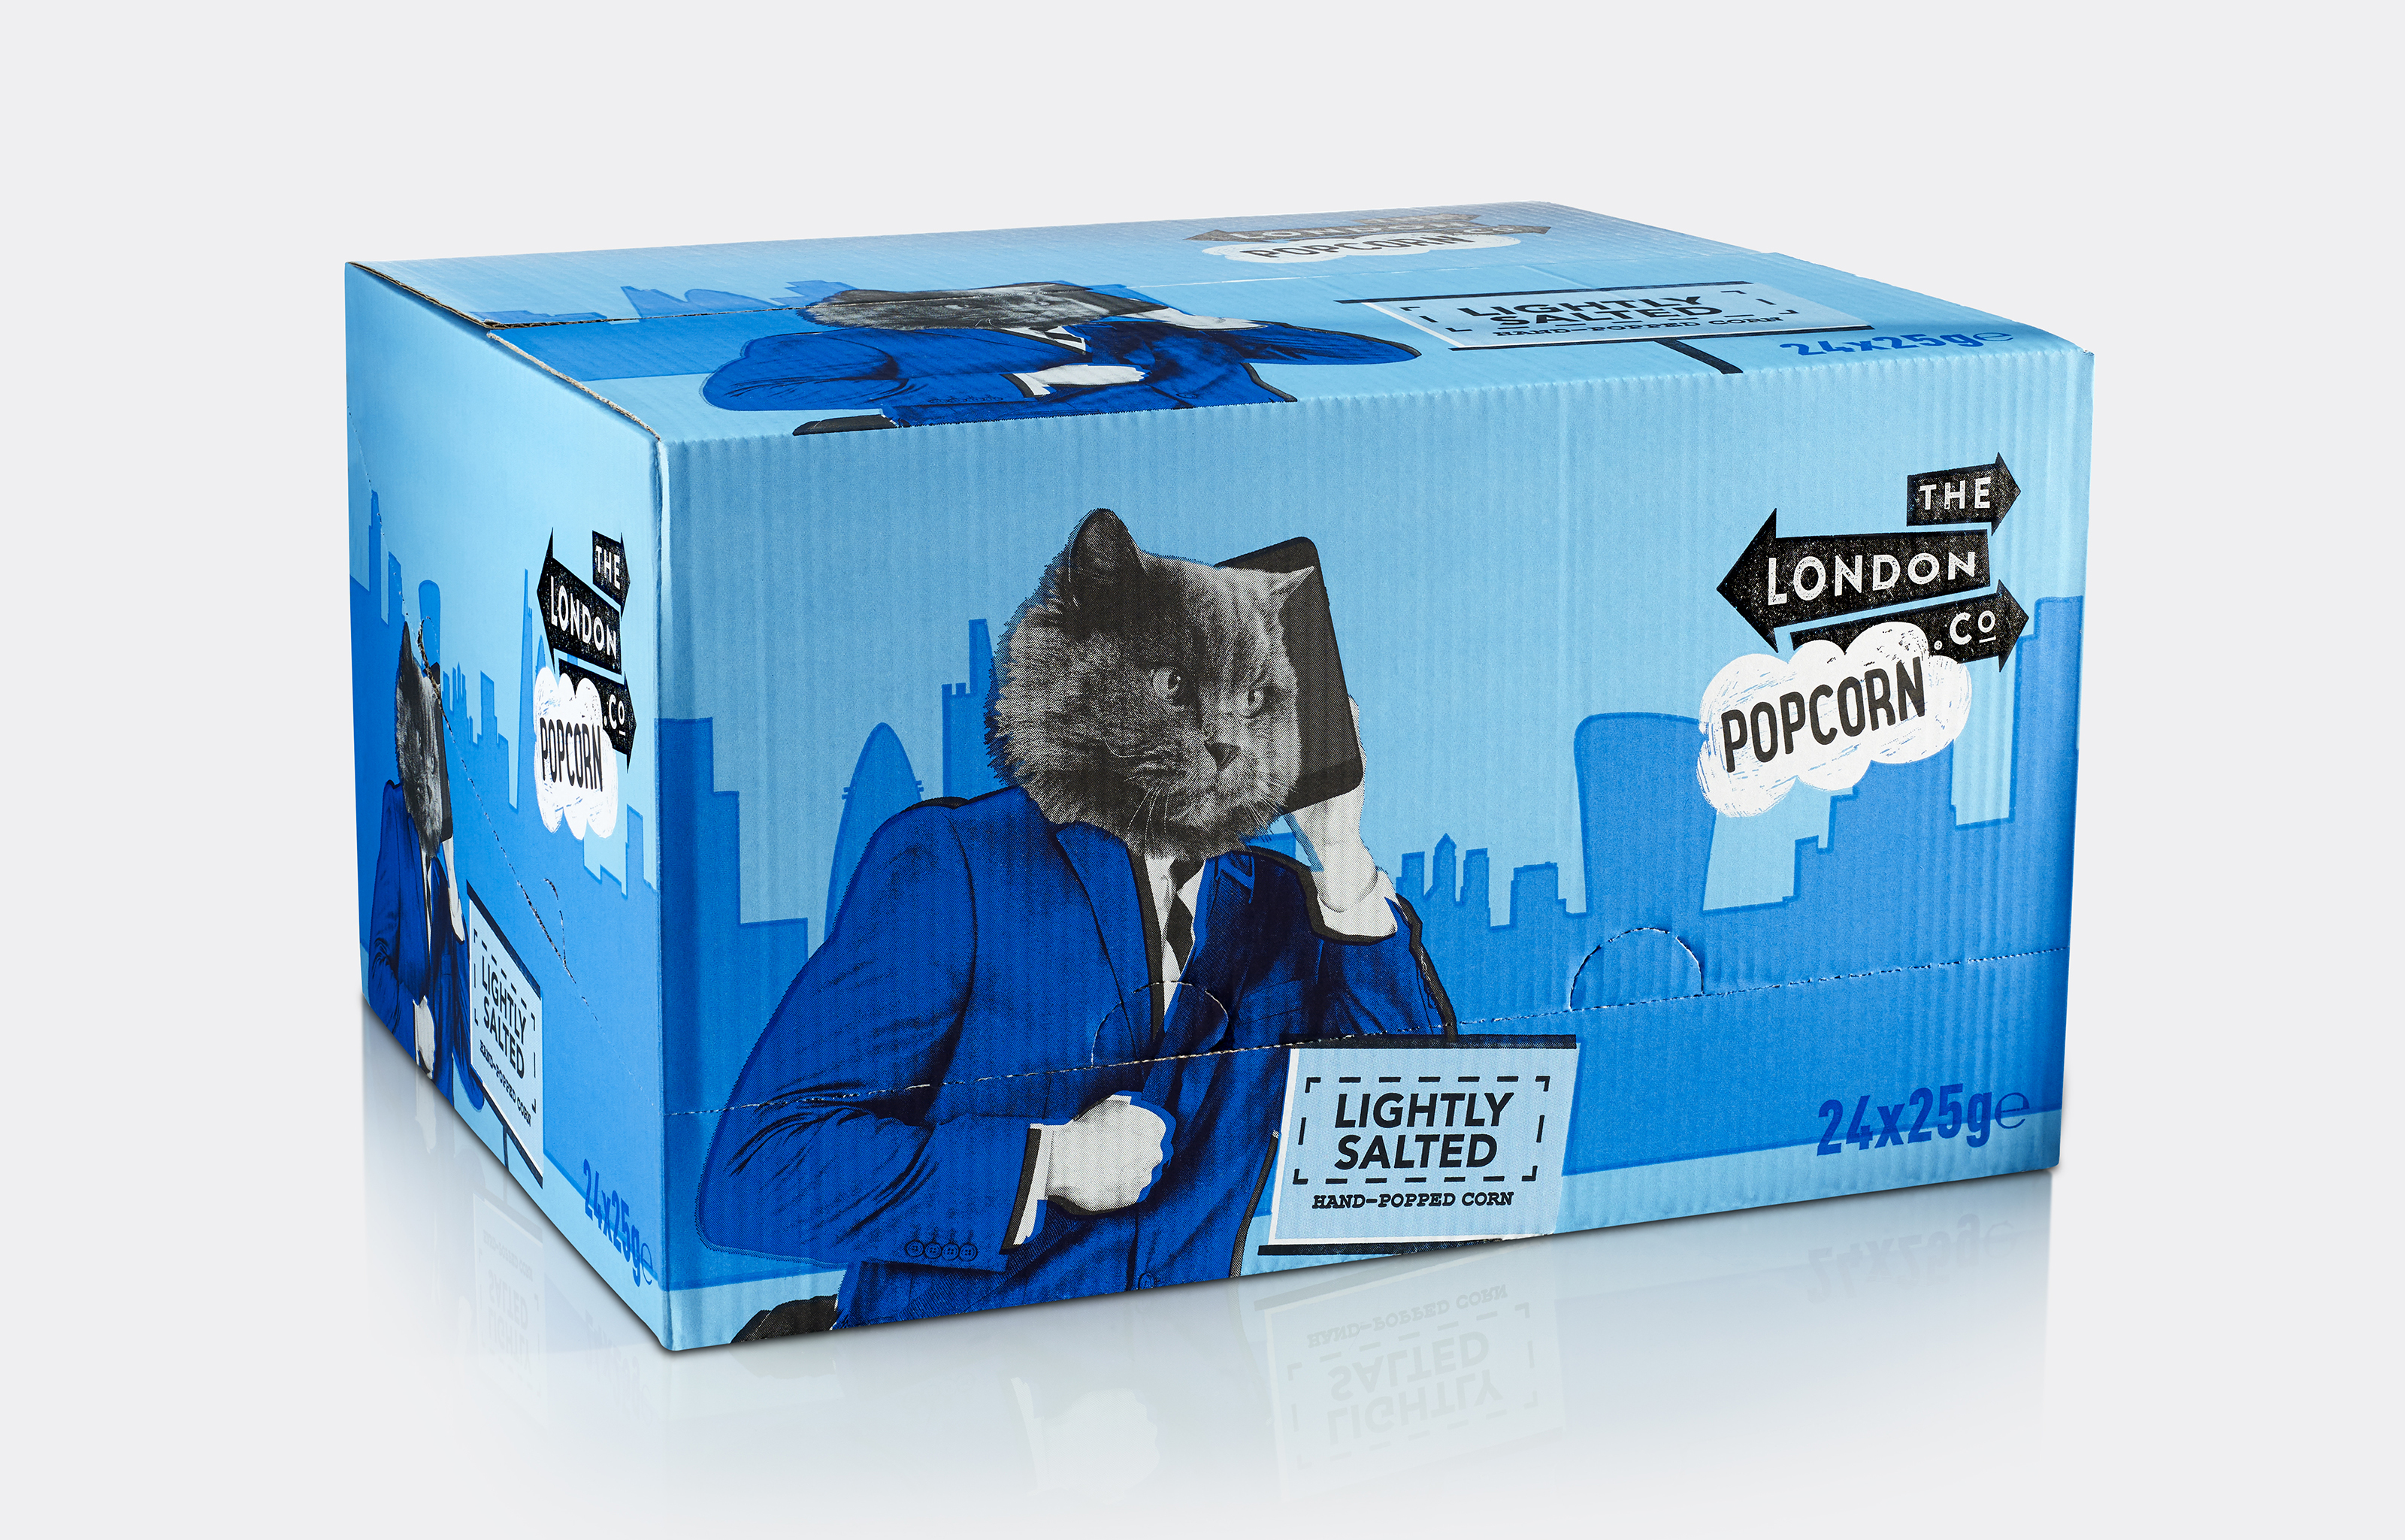 London Popcorn Co Salted Box